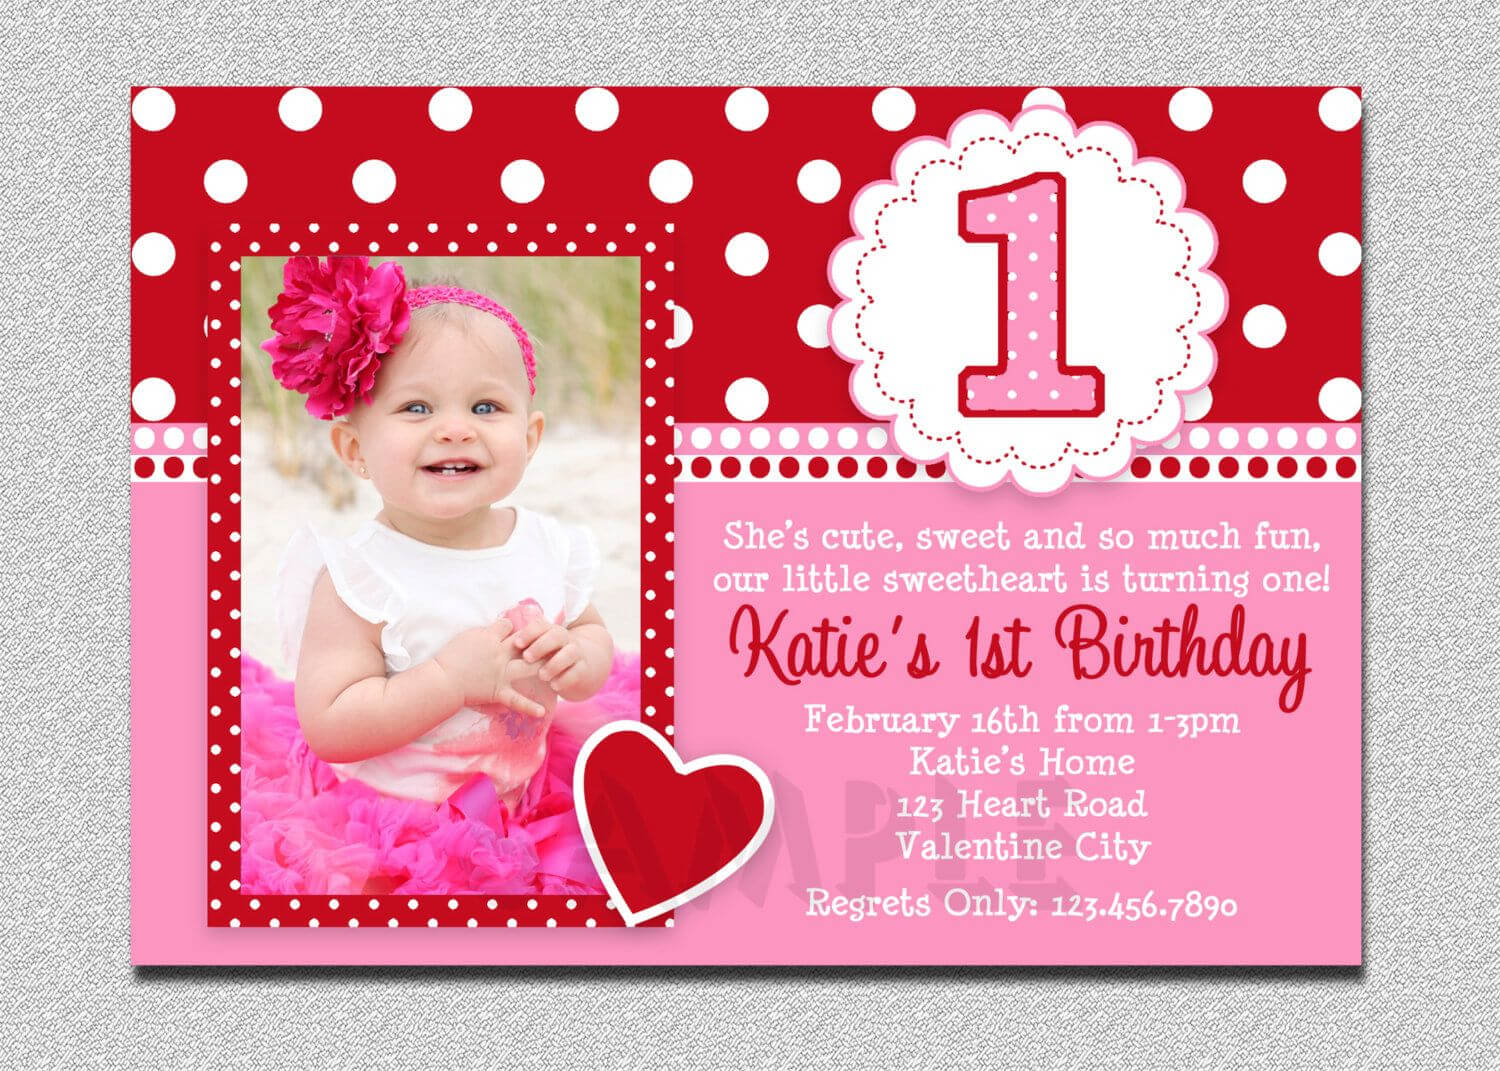 Unique Ideas For First Birthday Party Invitations Templates with First Birthday Invitation Card Template